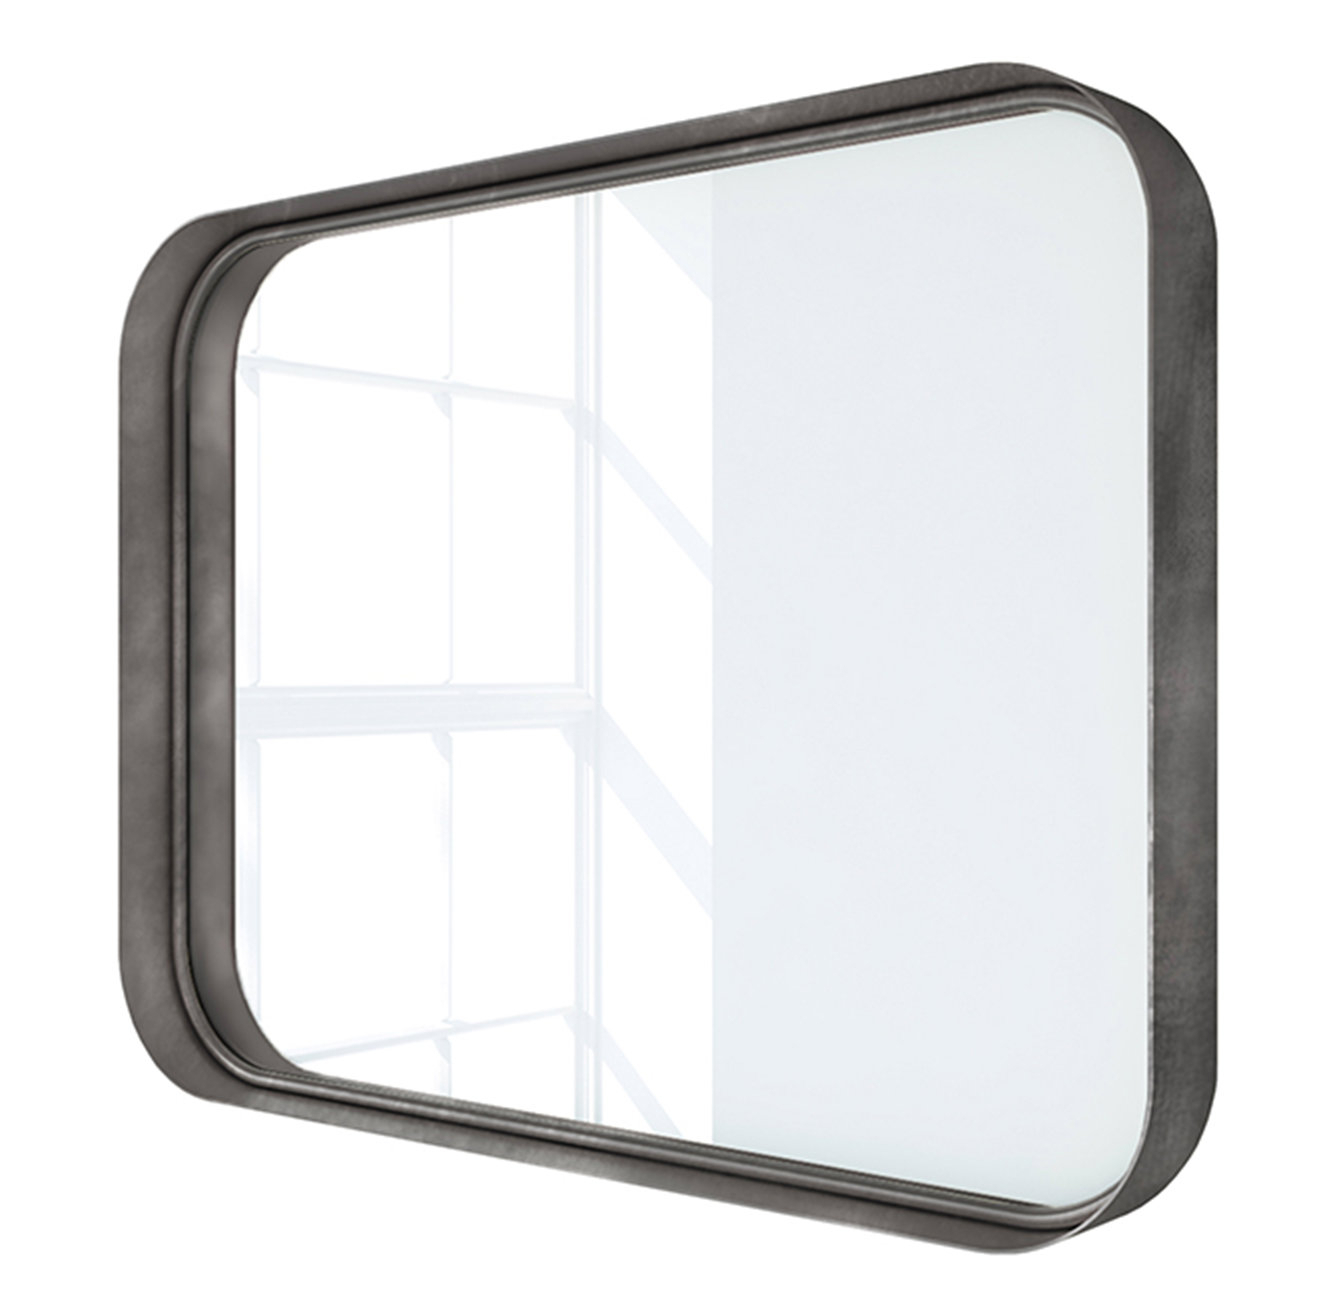 Theon Modern & Contemporary Accent Mirror Inside 2019 Fifi Contemporary Arch Wall Mirrors (Gallery 20 of 20)